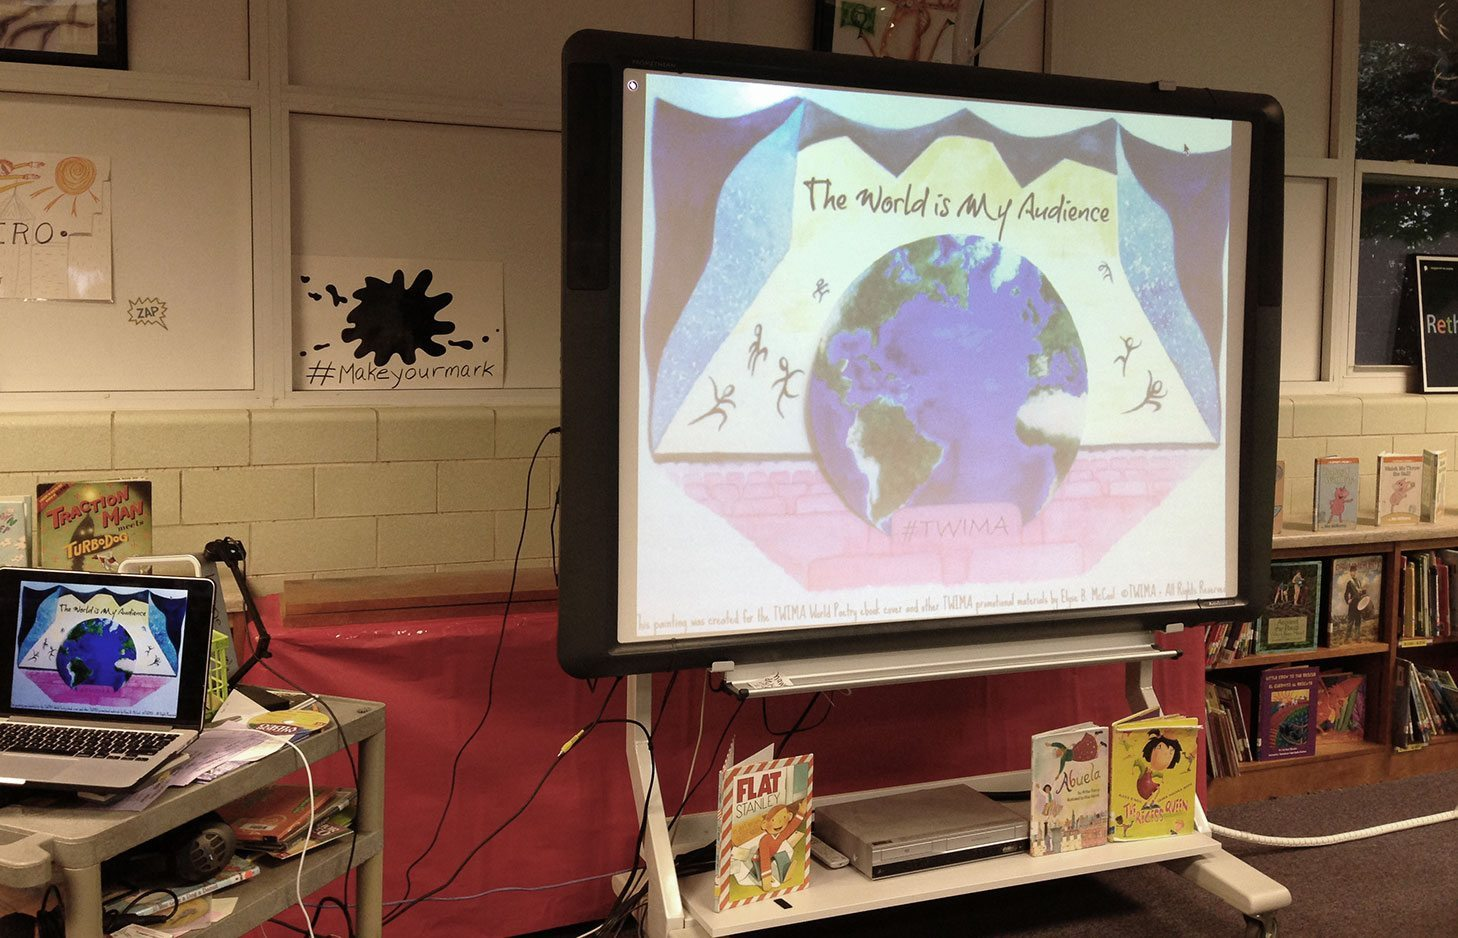 TWIMA book projected in the classroom